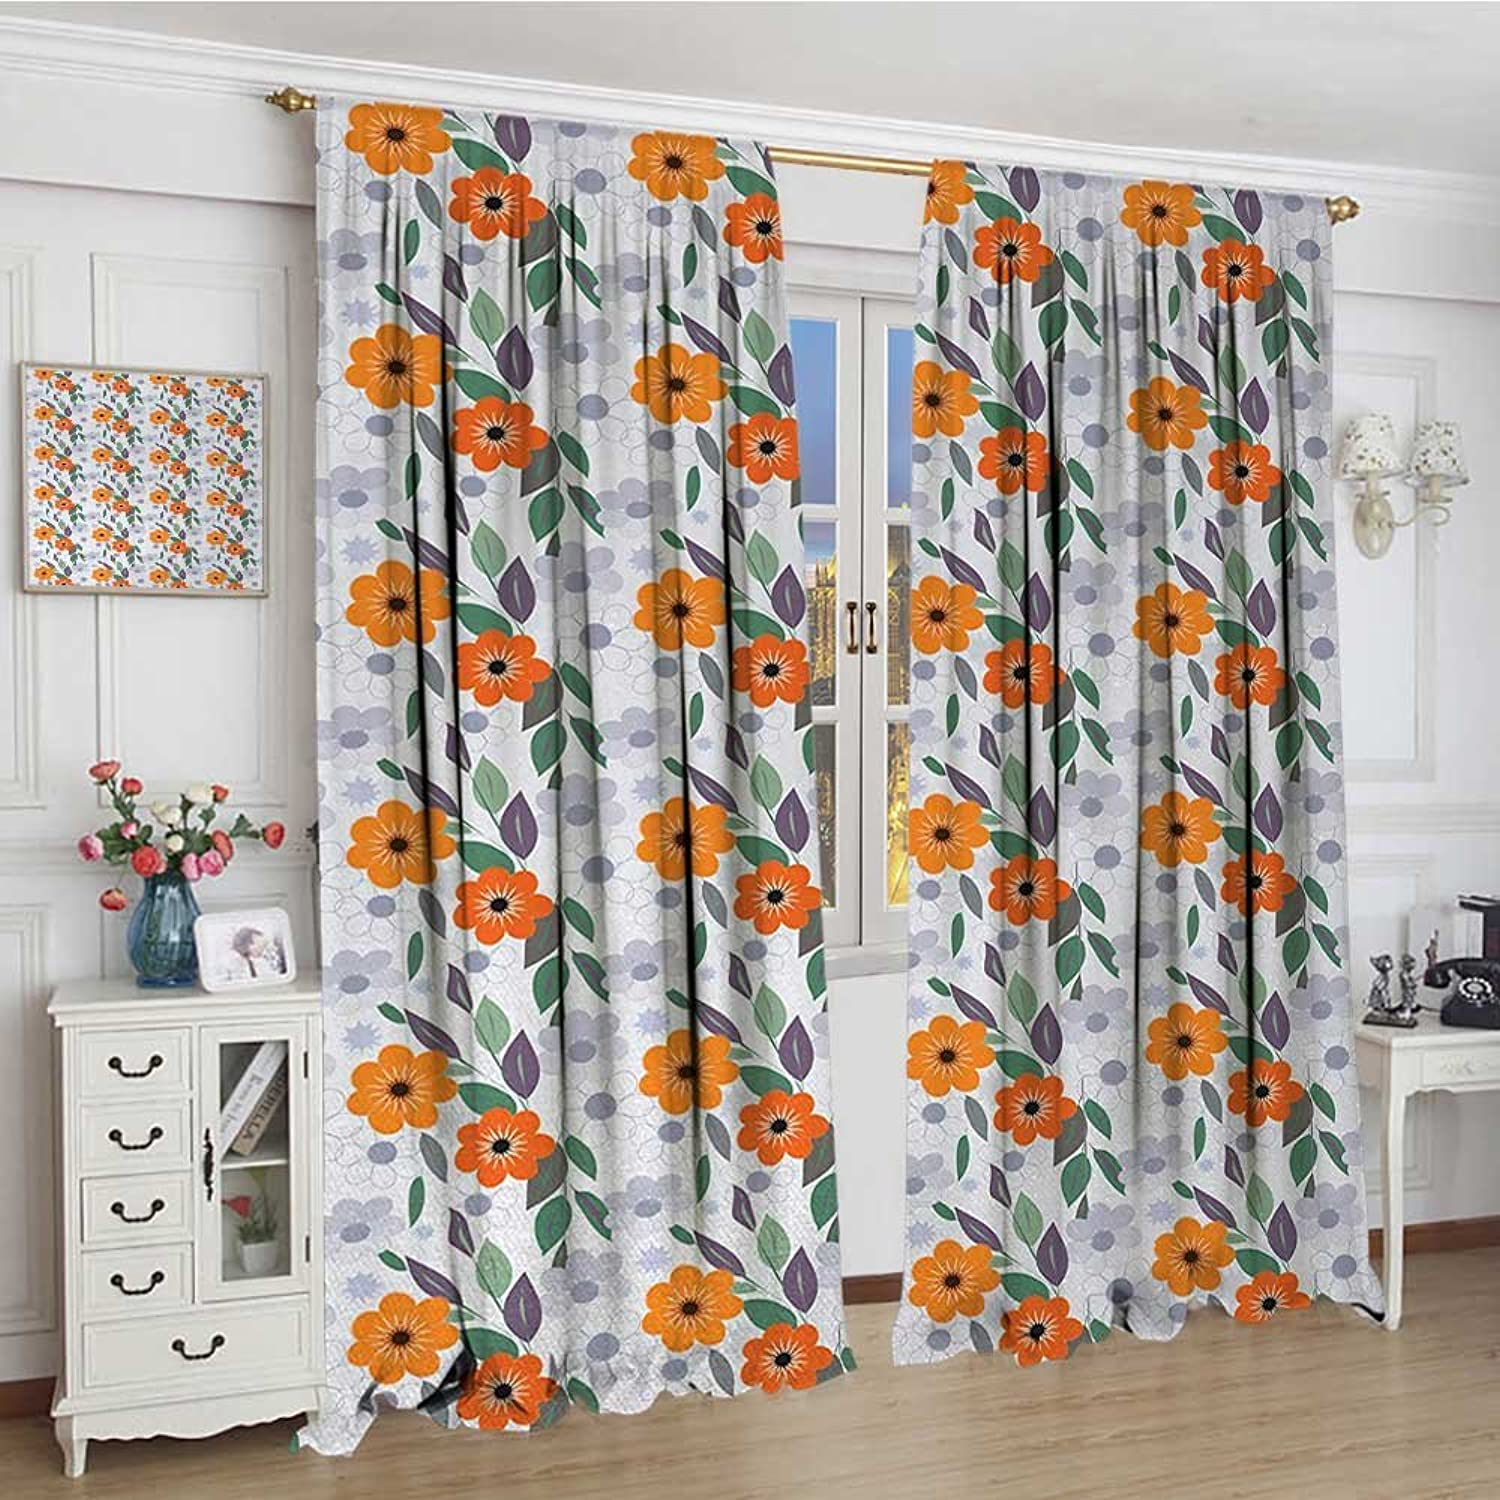 Smallbeefly Floral Blackout Window Curtain Pastel colord Spring Blossom Field Essence Nostalgic Feminine Mother Nature Petals Patterned Drape Glass Door 96 x72  Multicolor